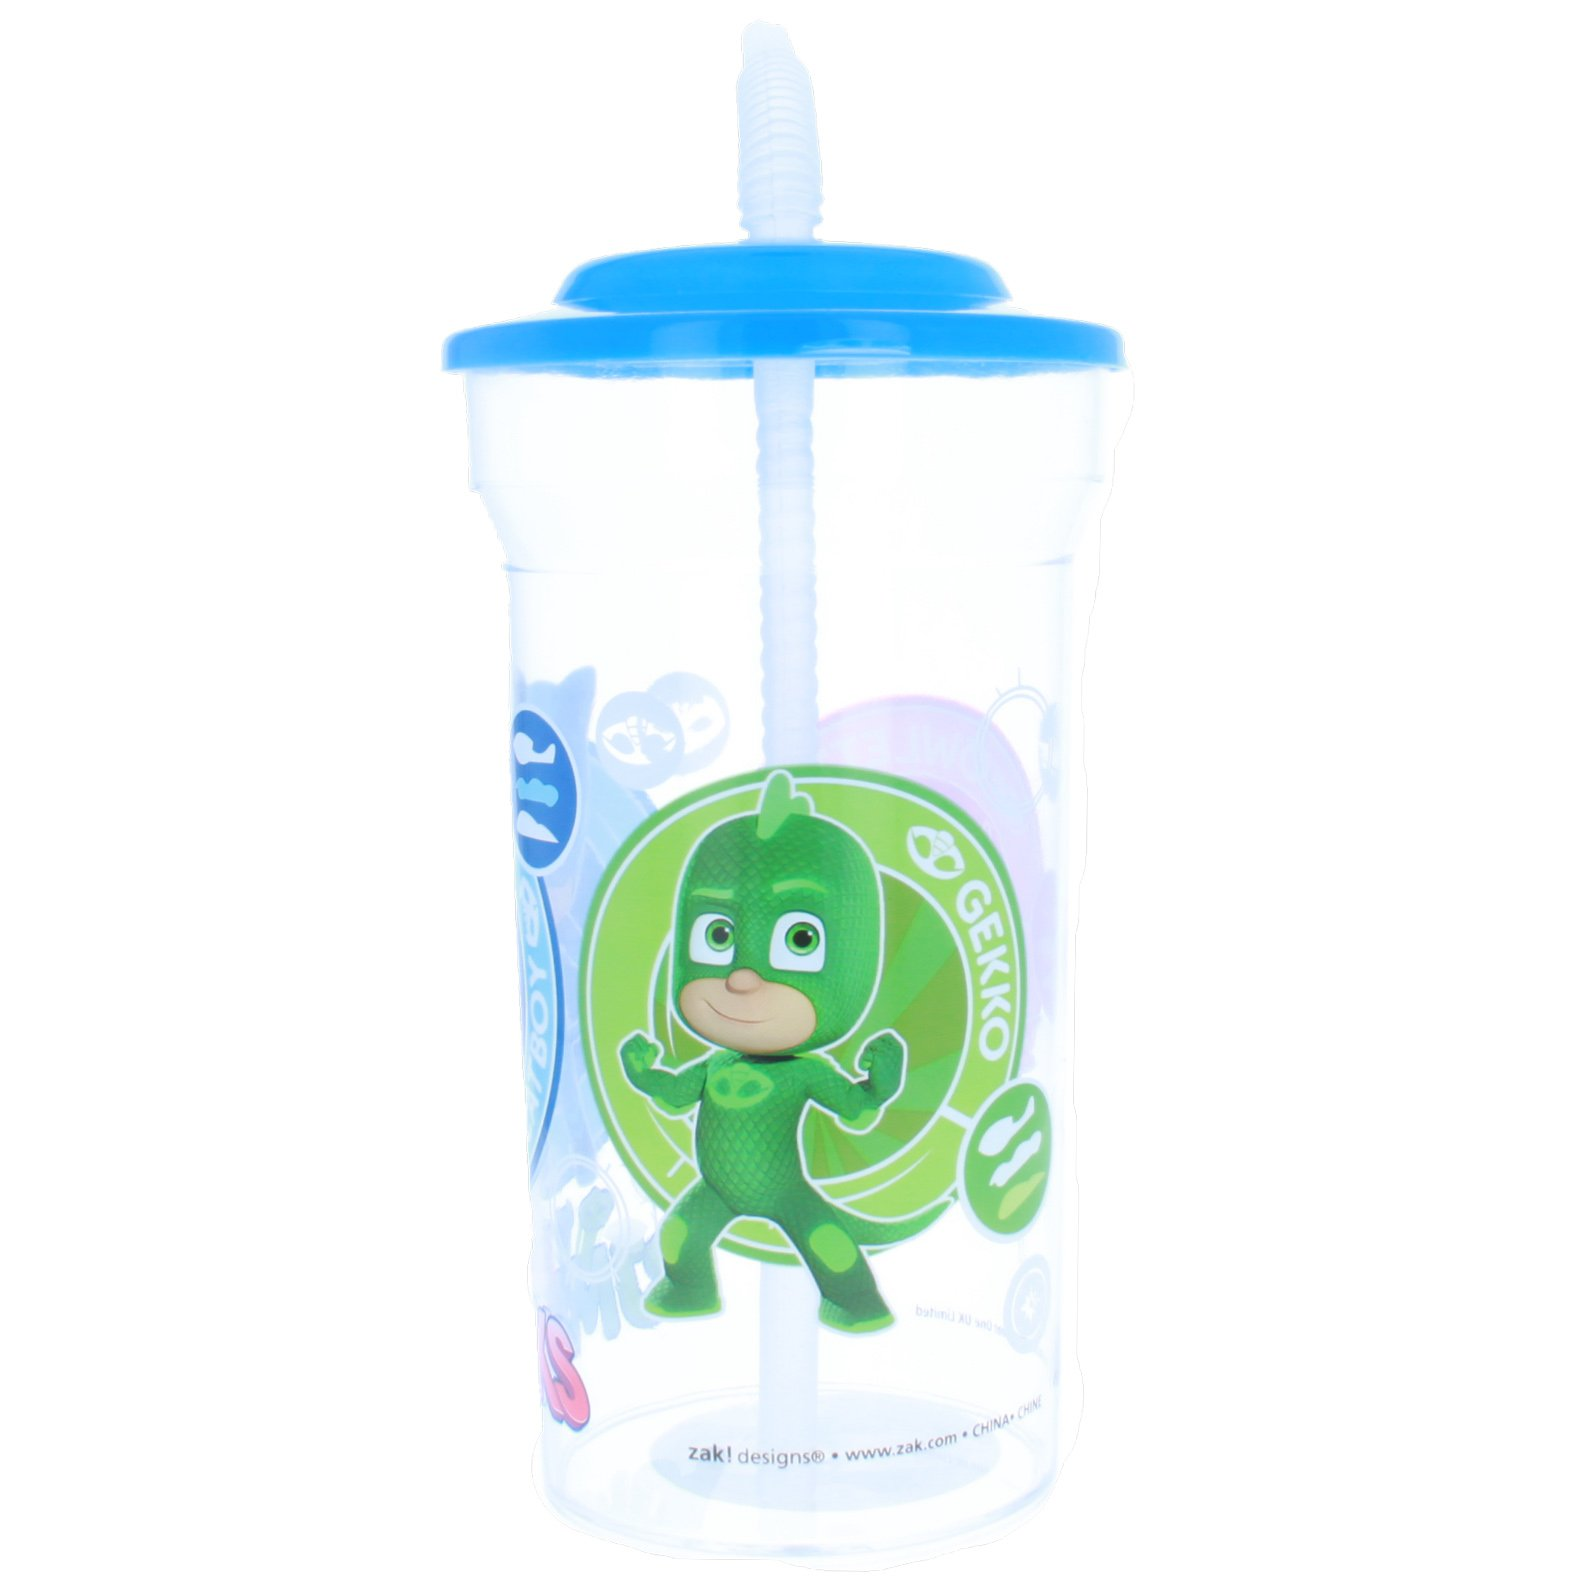 Kids PJ Mask 16oz Sports Drink Cup with Attached Straw Lid